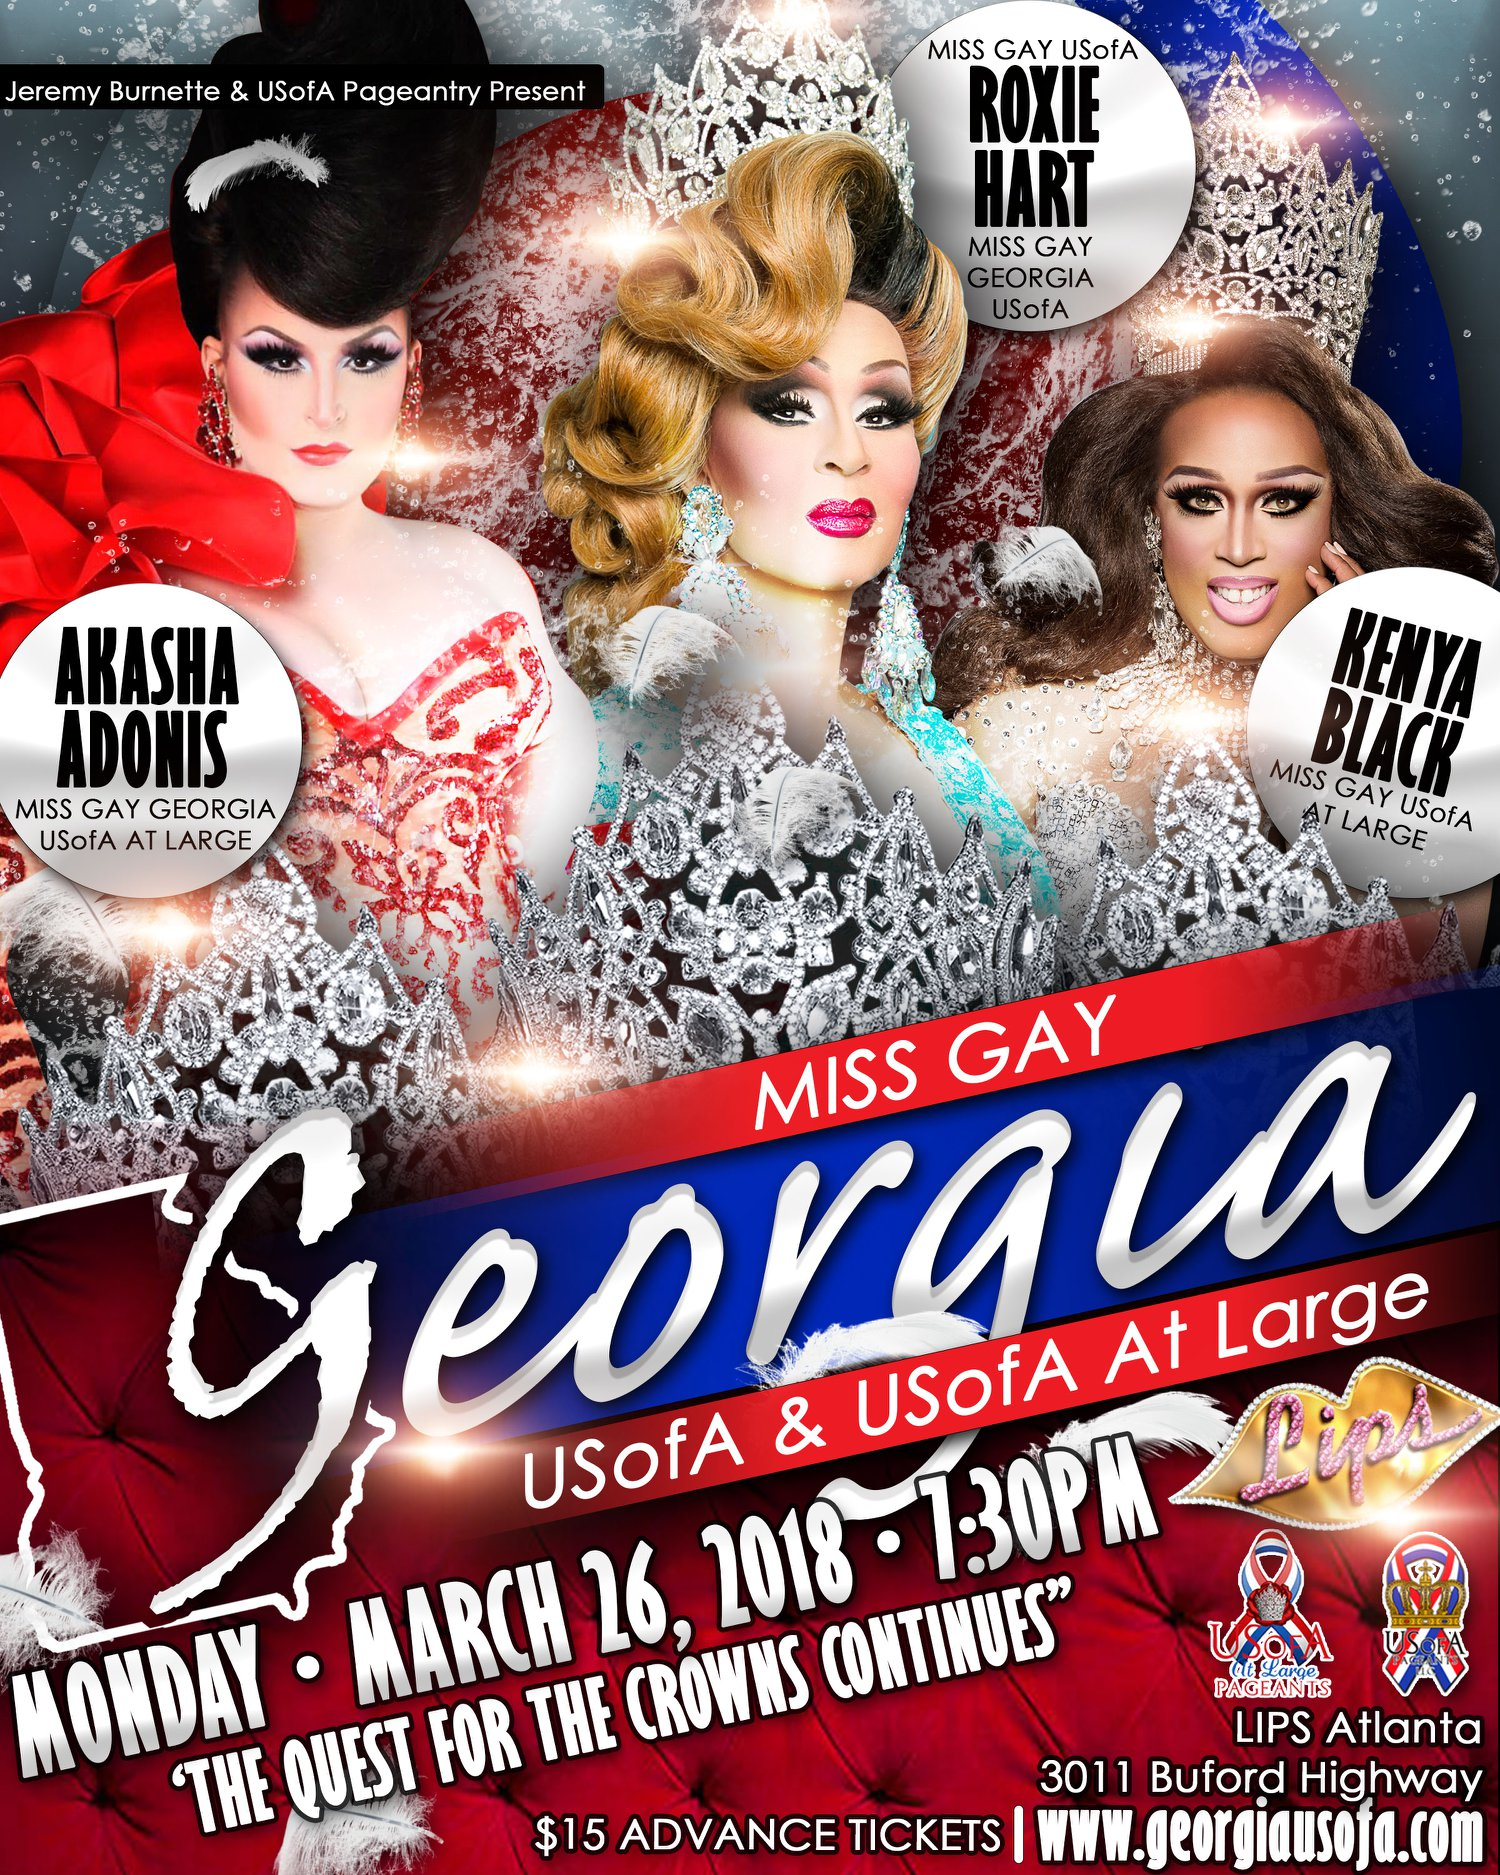 Show Ad | Miss Gay Georgia USoA and Miss Gay Georgia USofA at Large | 3/26/2018